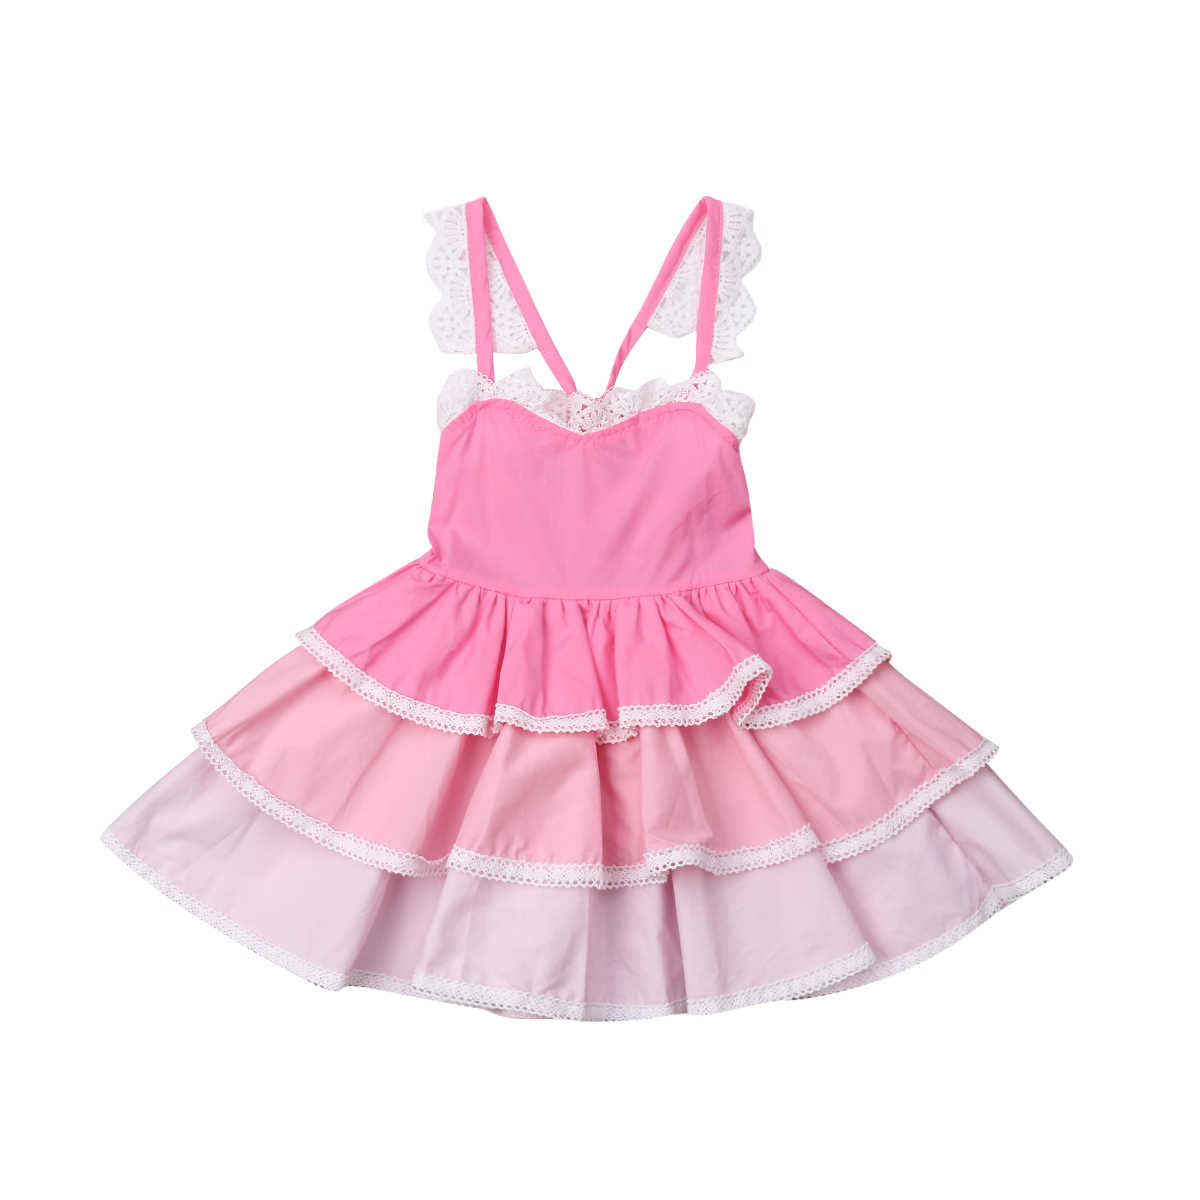 b235d20ec70 Detail Feedback Questions about Fashion Toddler Girl Kid Summer Vintage Lace  Dress Solid Bandage Party Wedding Flower Girl Princess Dress on  Aliexpress.com ...